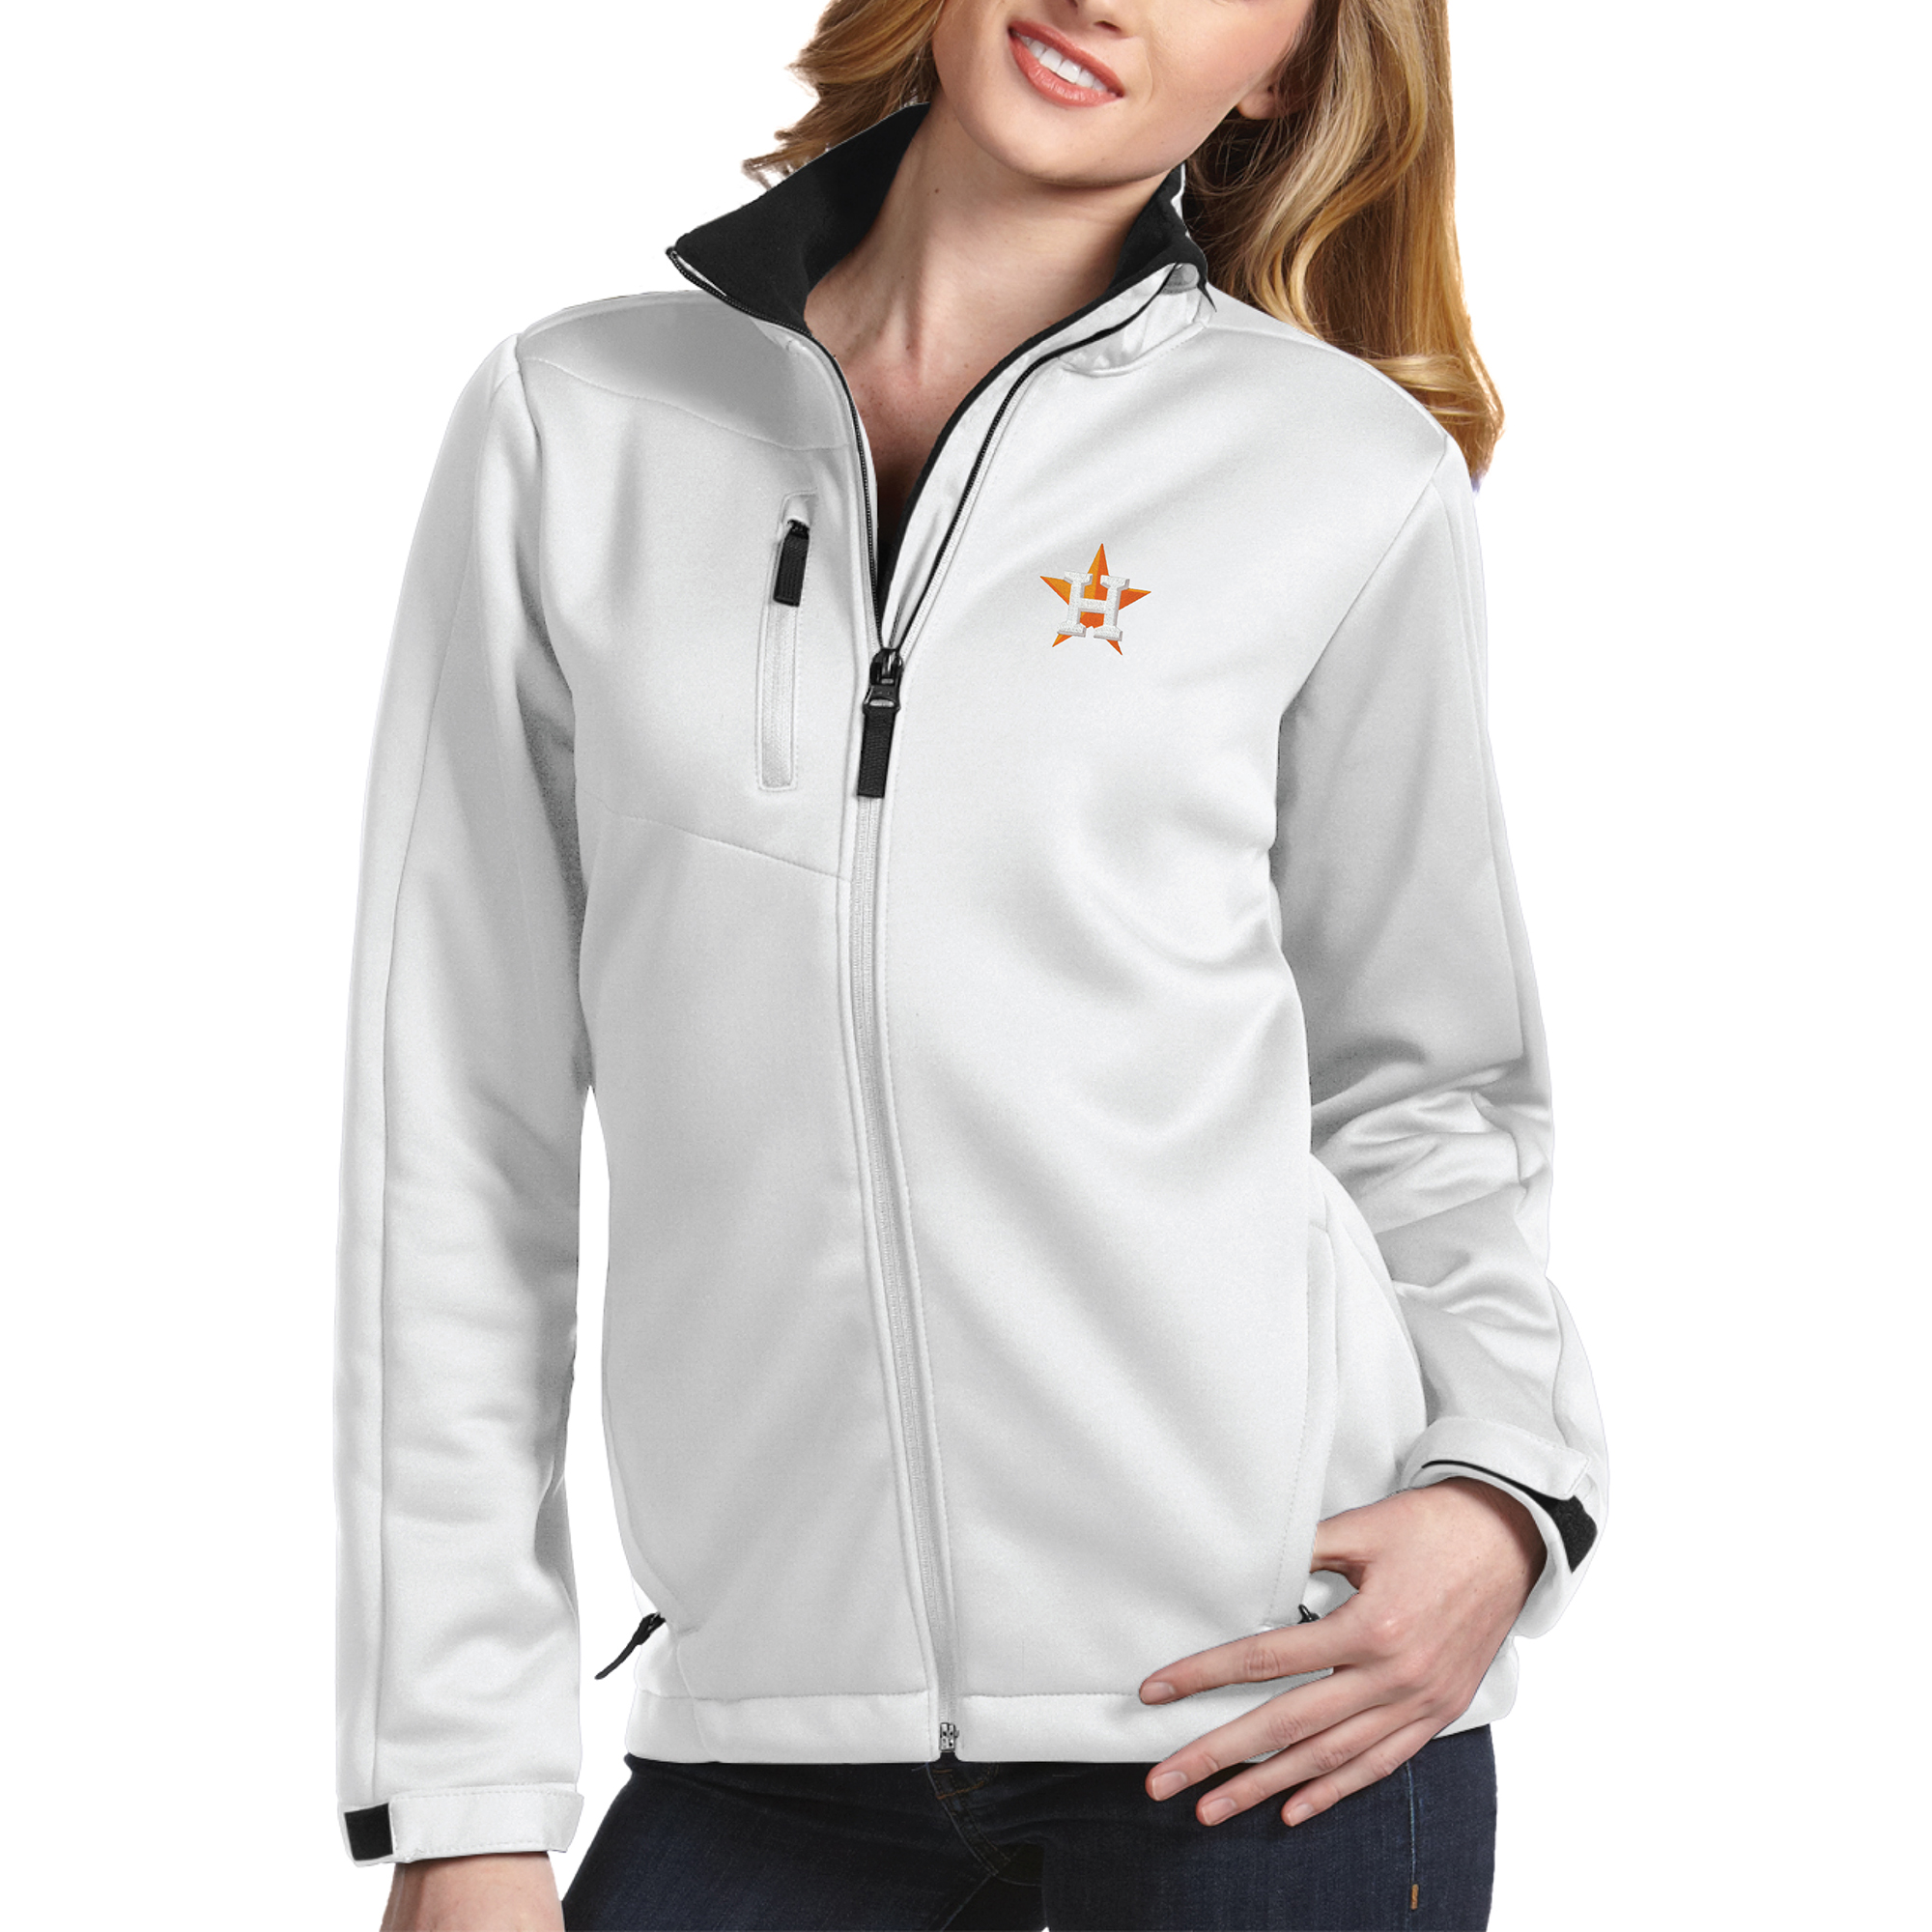 Houston Astros Antigua Women's Traverse Jacket White by ANTIGUA GROUP/ 22534